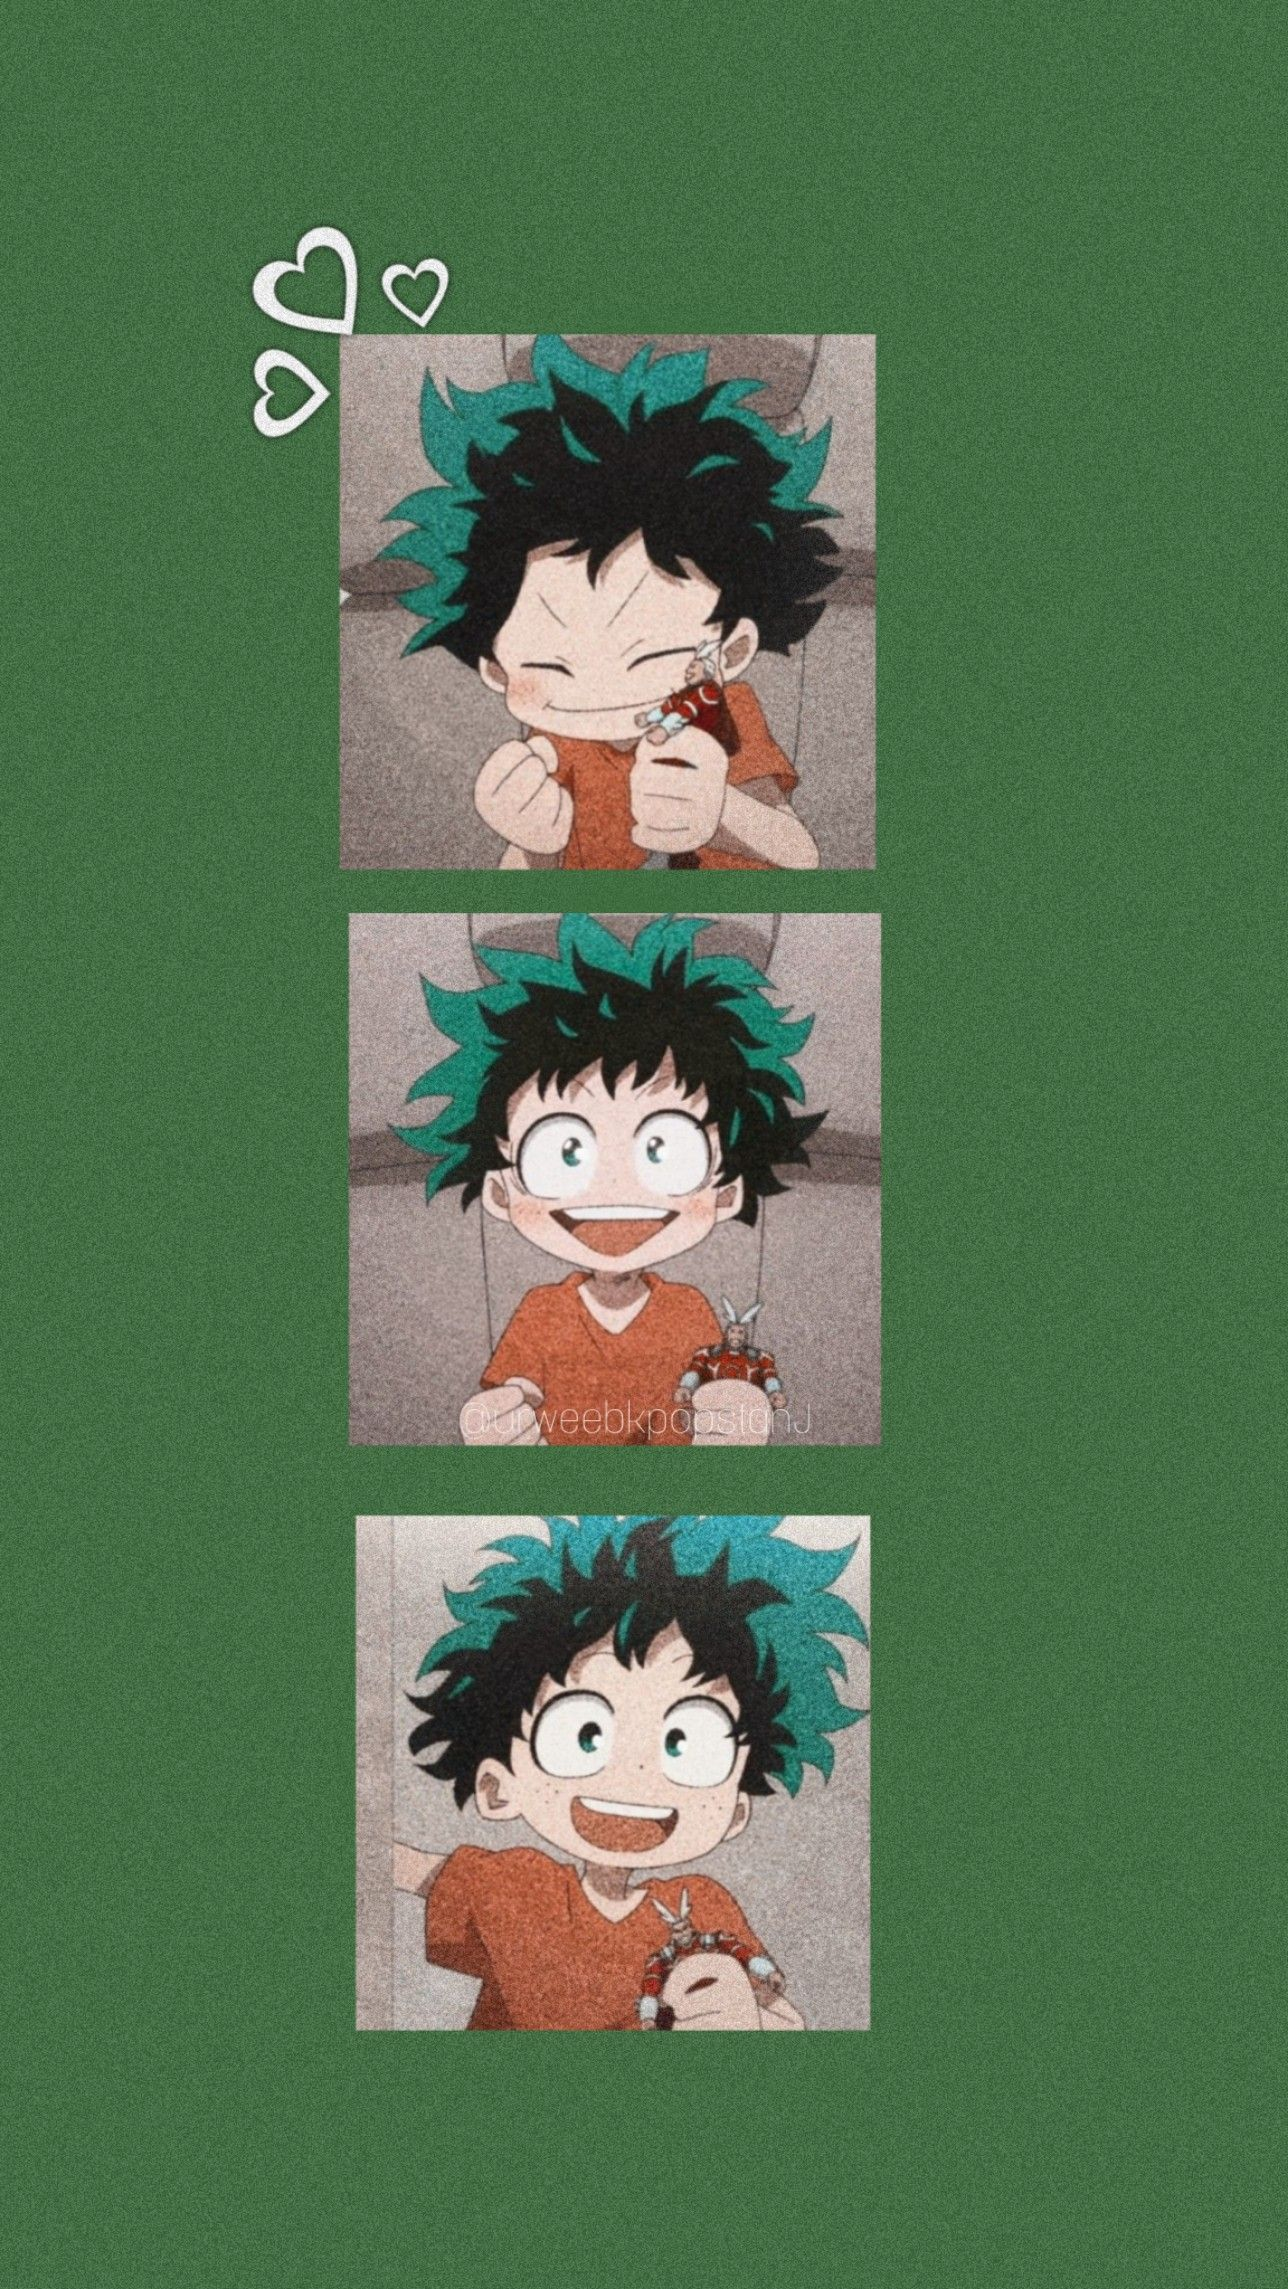 Cute Deku Wallpaper Anime Wallpaper Hero Wallpaper Cute Anime Wallpaper